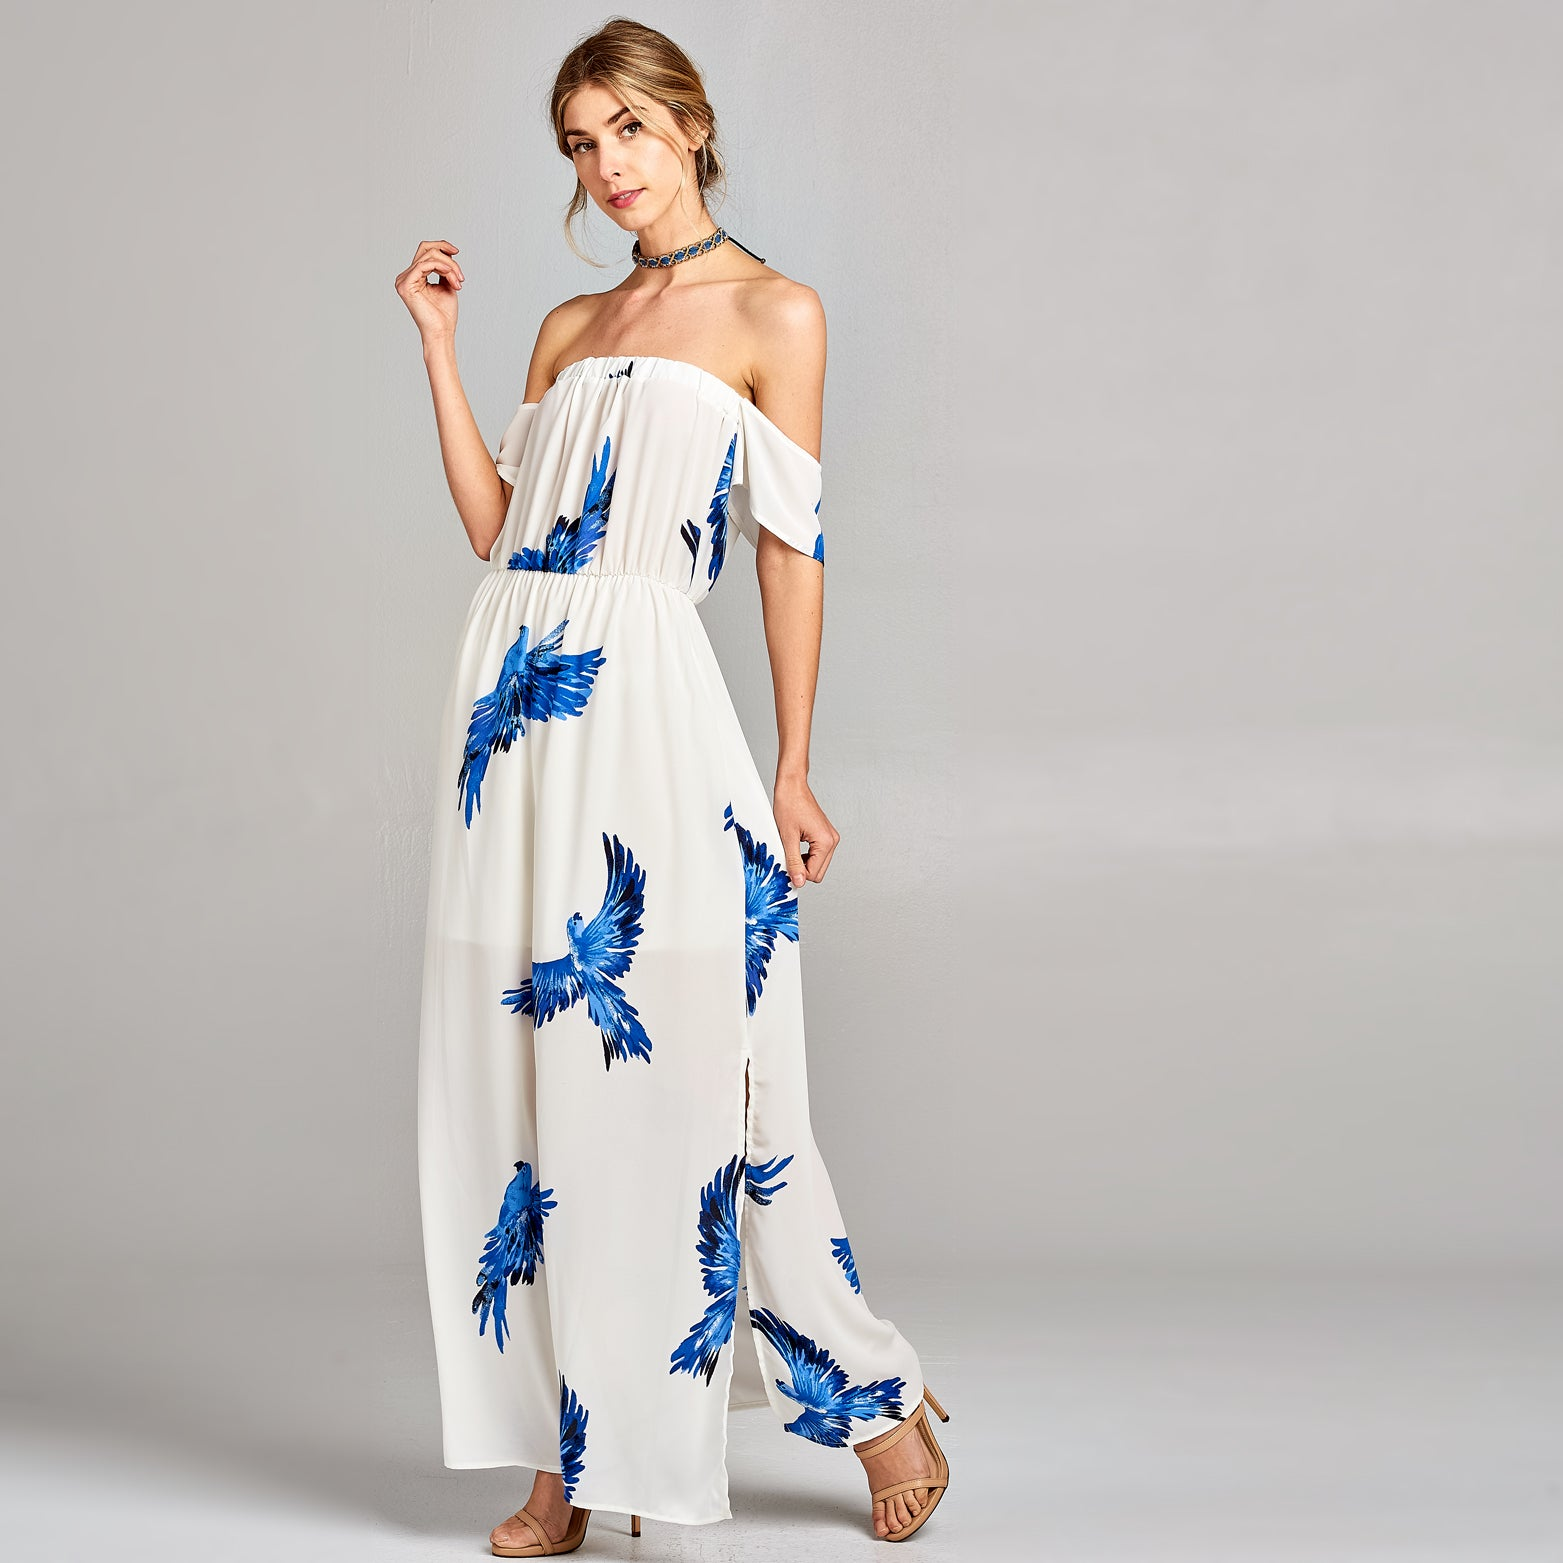 Blue Parrots Chiffon Maxi Dress